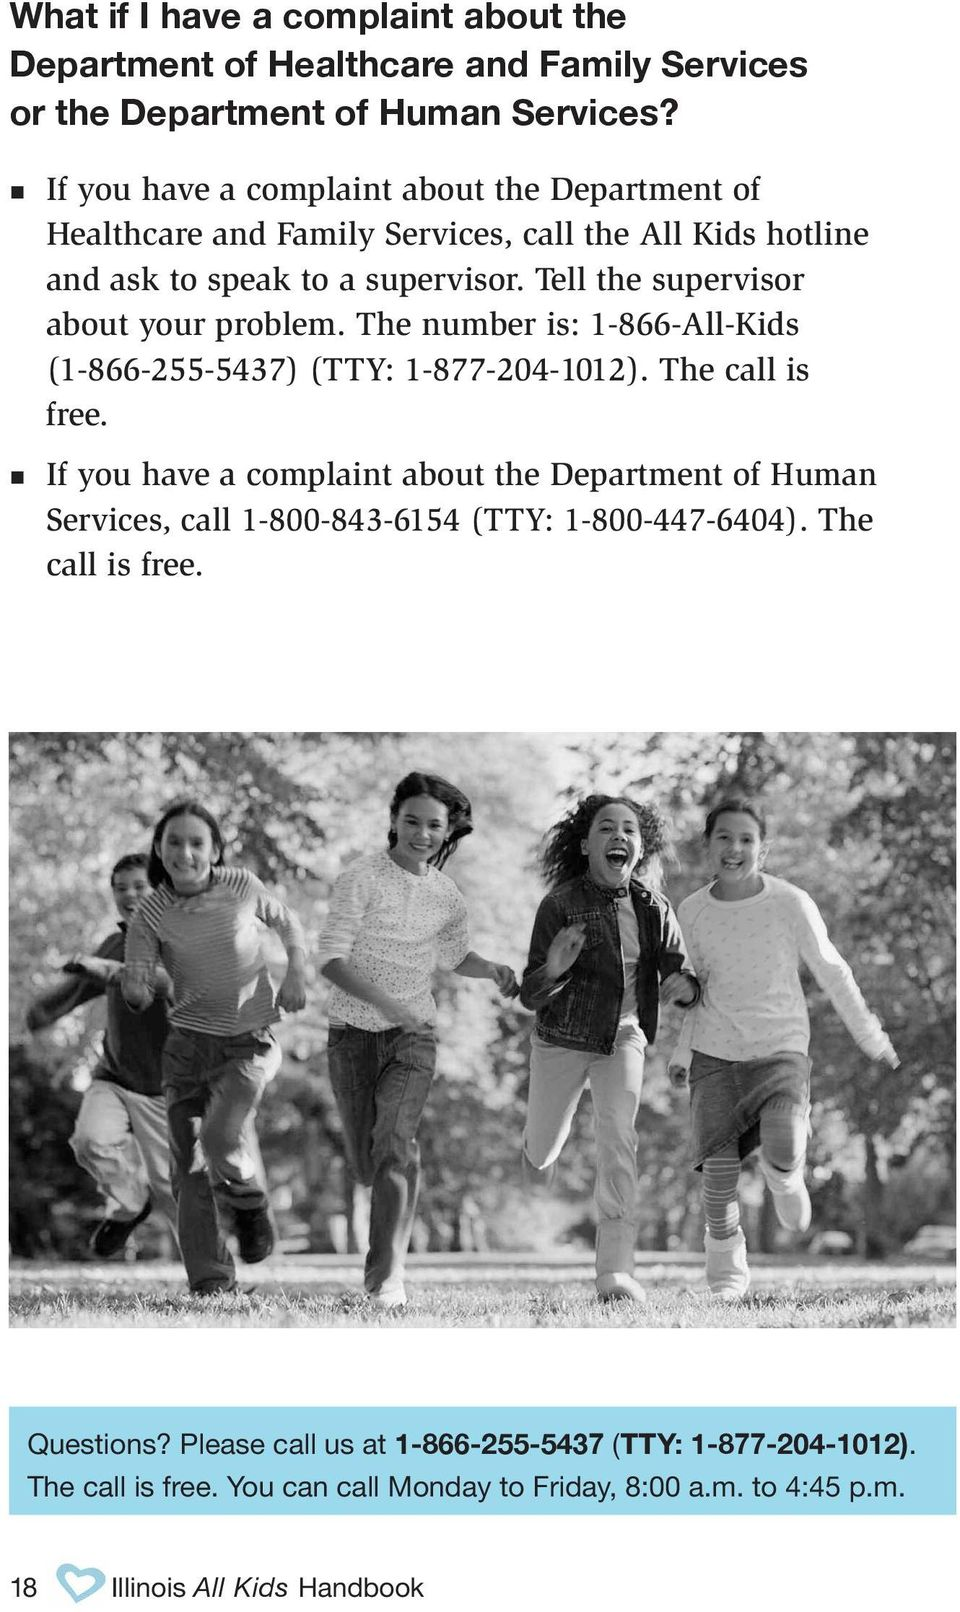 Tell the supervisor about your problem. The number is: 1-866-All-Kids (1-866-255-5437) (TTY: 1-877-204-1012). The call is free.